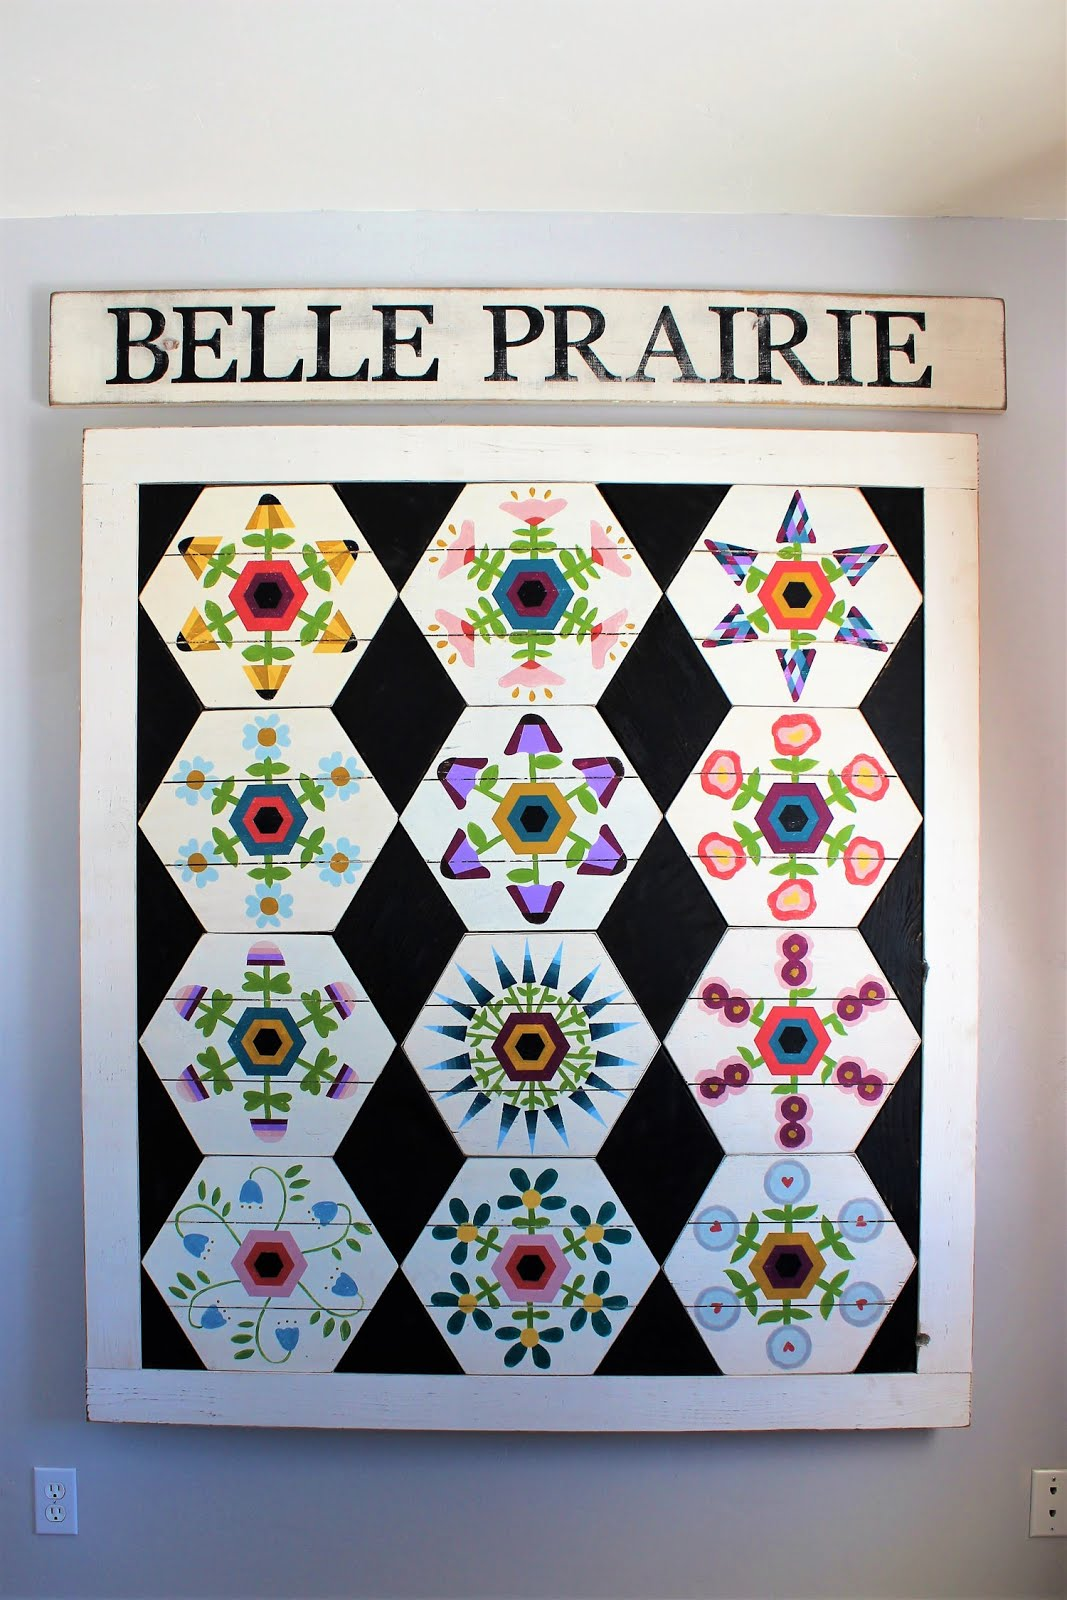 Belle Prairie Collection